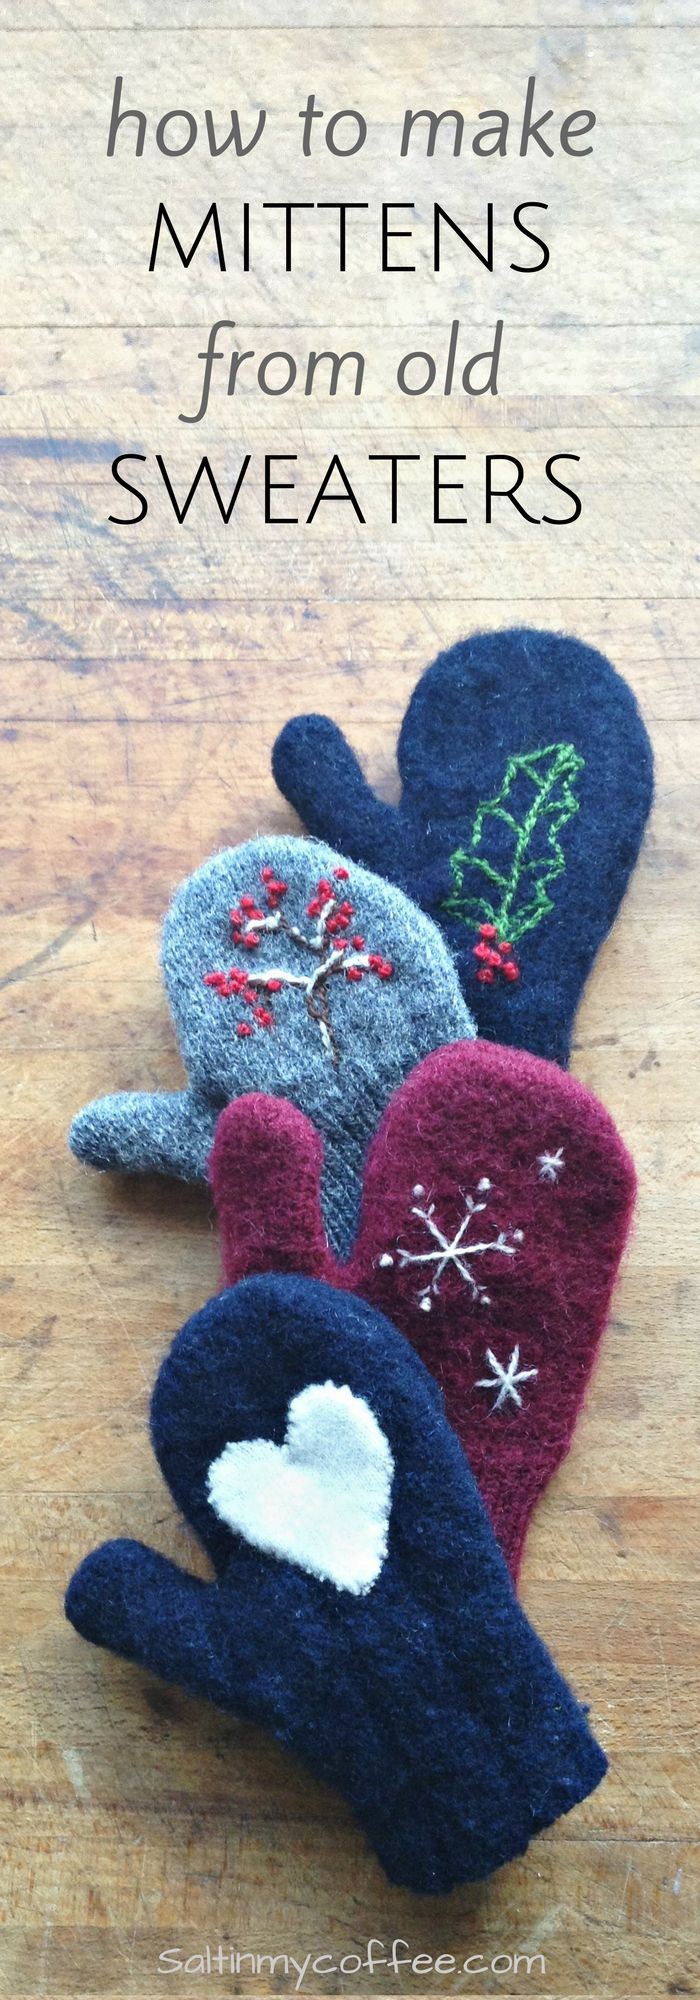 FREE PATTERNS in all sizes! How to make mittens from old sweaters. It's SO easy, and takes less than 20 minutes to make a warm new pair of mittens from an old sweater!